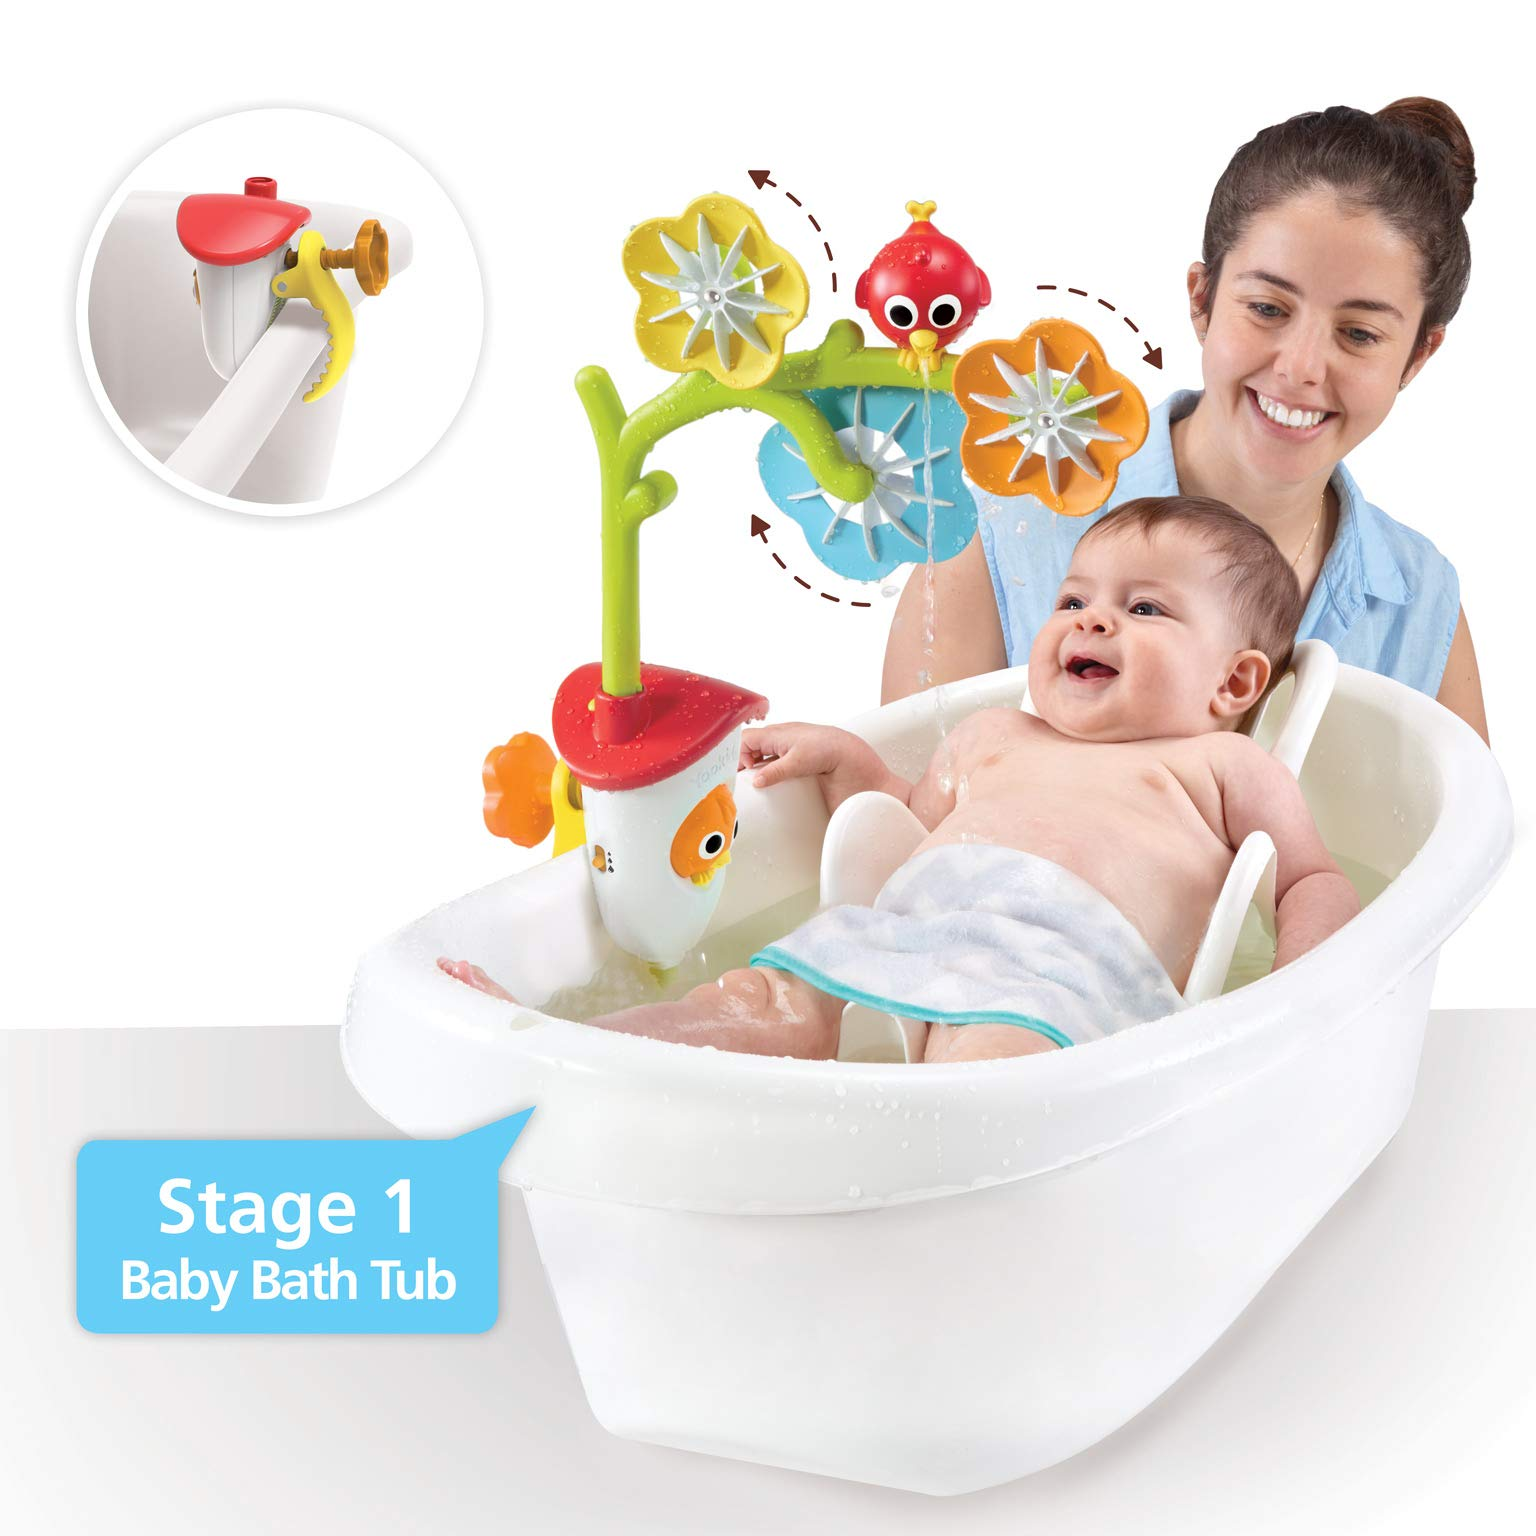 Yookidoo Baby Bath Mobile - Spinning Flowers and Swiveling Fountain for Newborn and Toddler Bath Time Sensory Development - Attaches to Any Size Tub Wall - 0-2 yrs